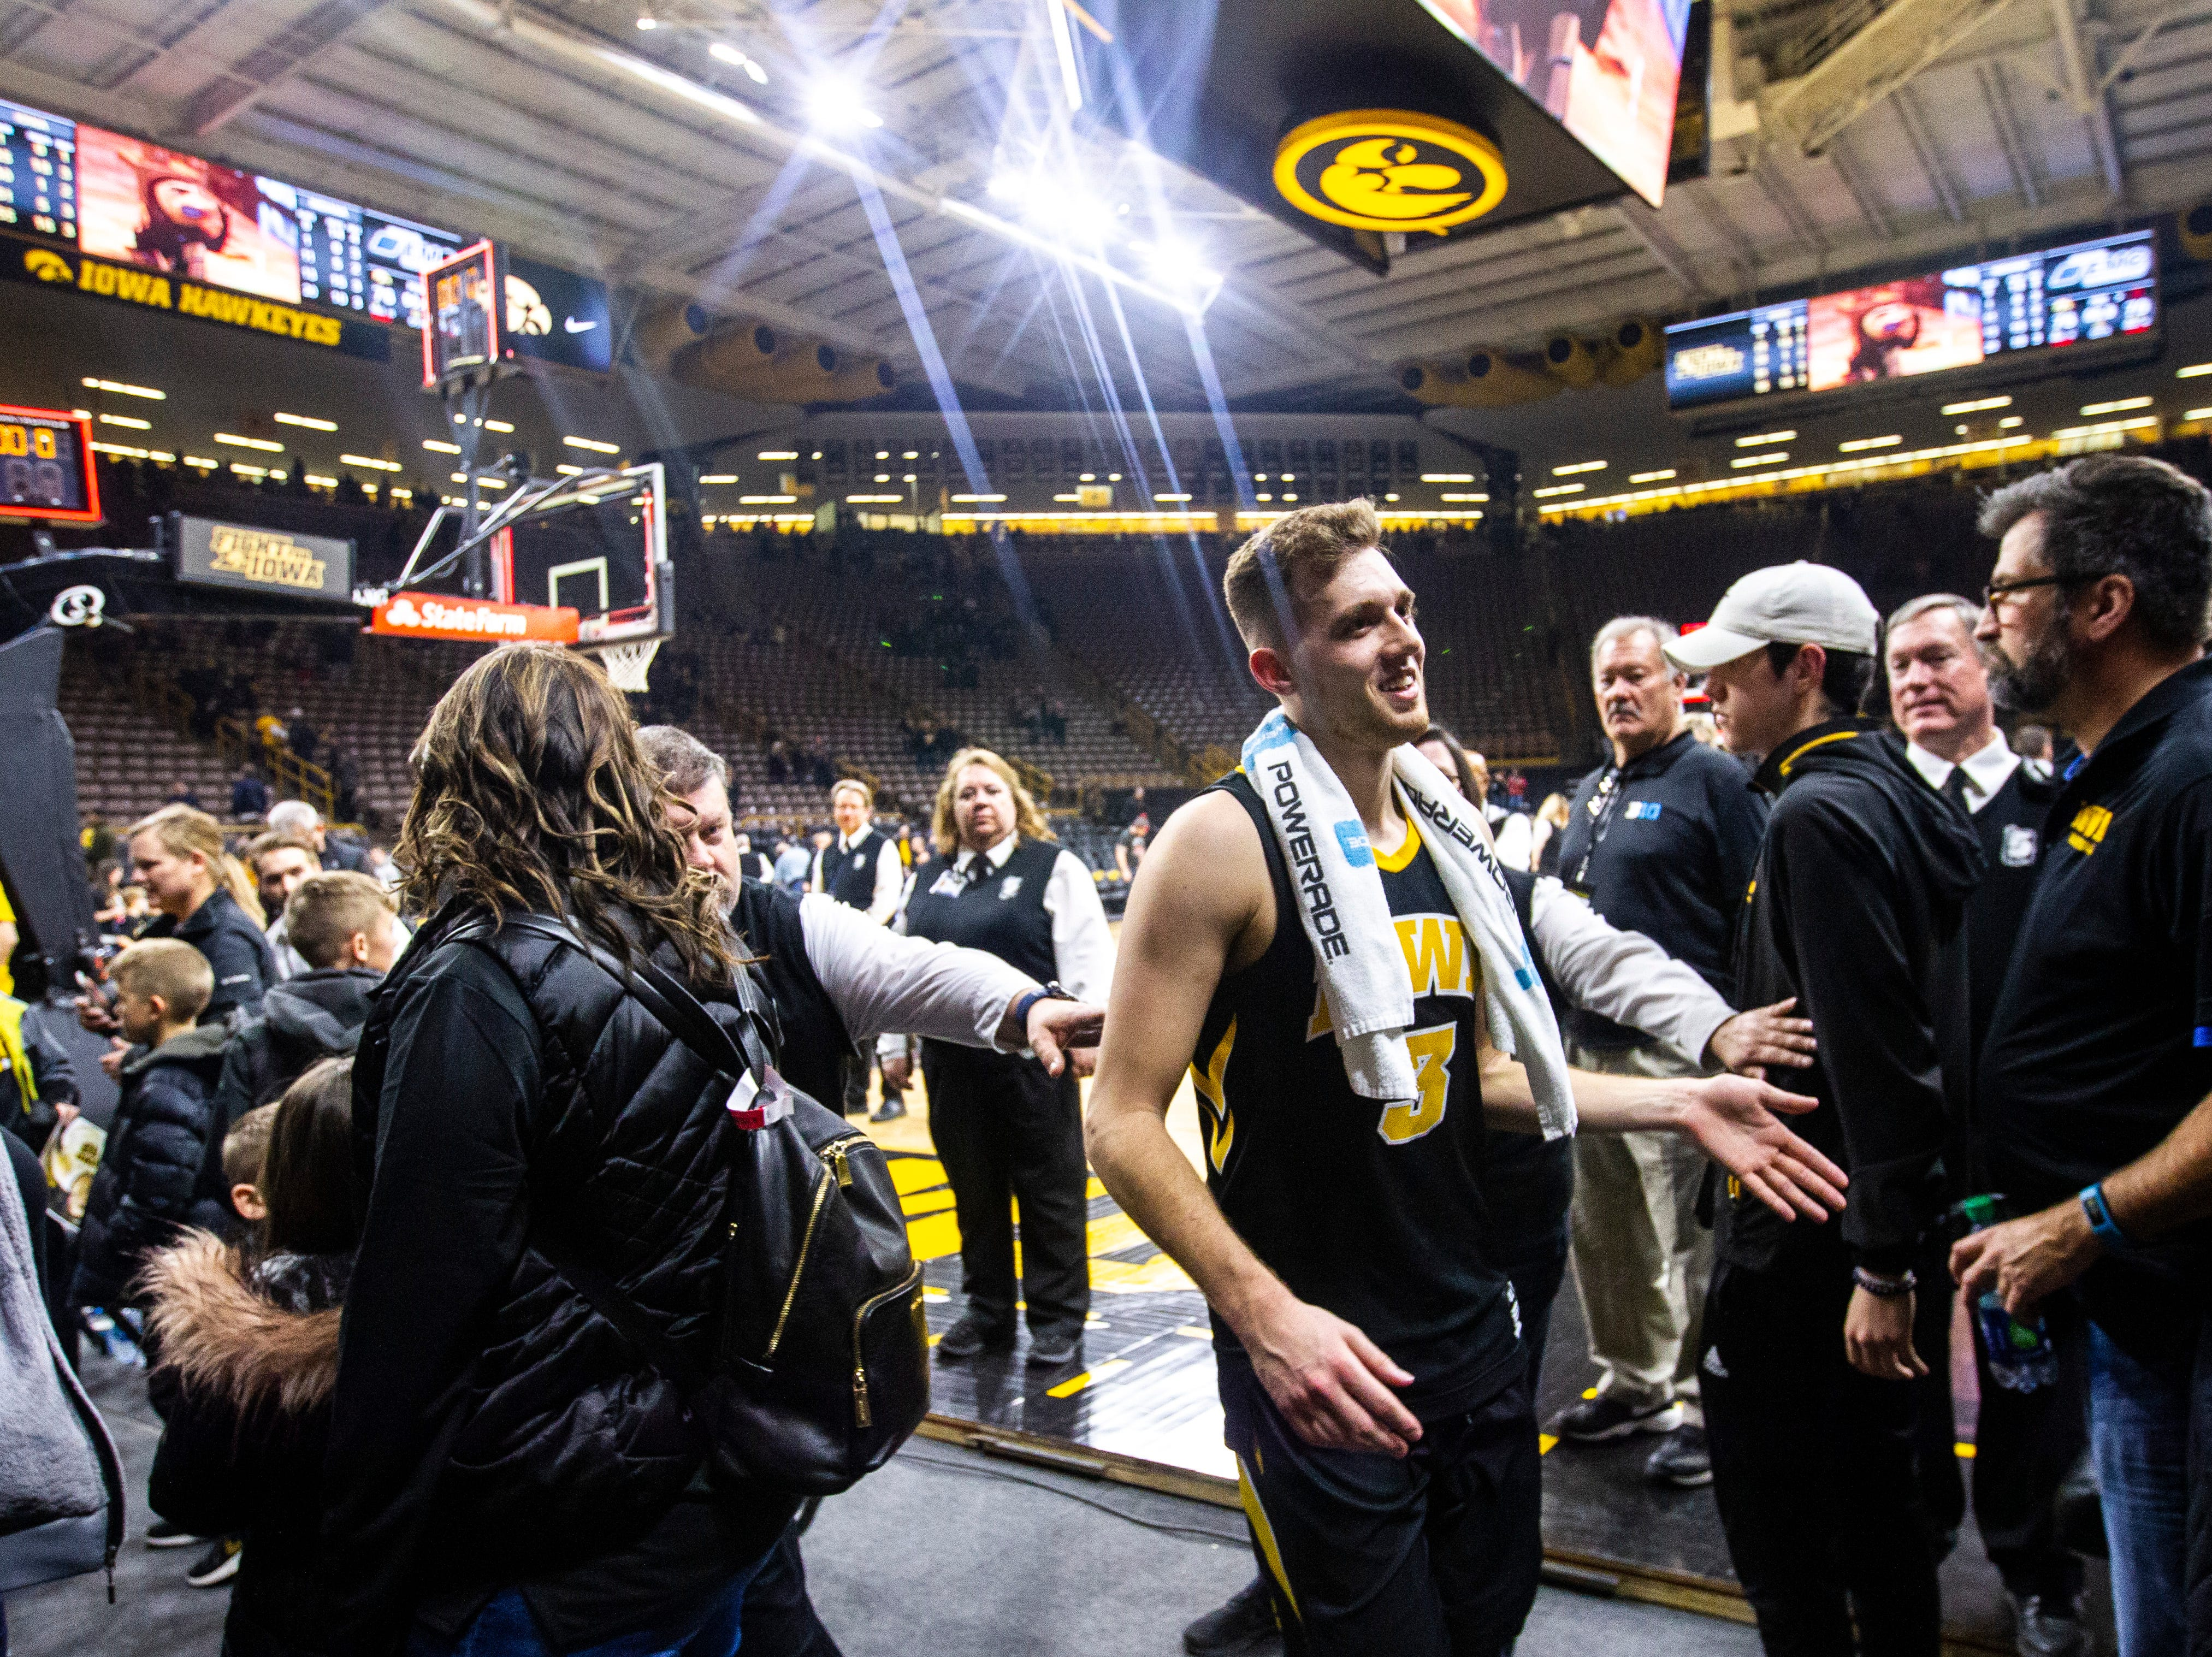 Iowa guard Jordan Bohannon (3) high-fives fans after a NCAA Big Ten Conference men's basketball game on Friday, Feb. 22, 2019 at Carver-Hawkeye Arena in Iowa City, Iowa.